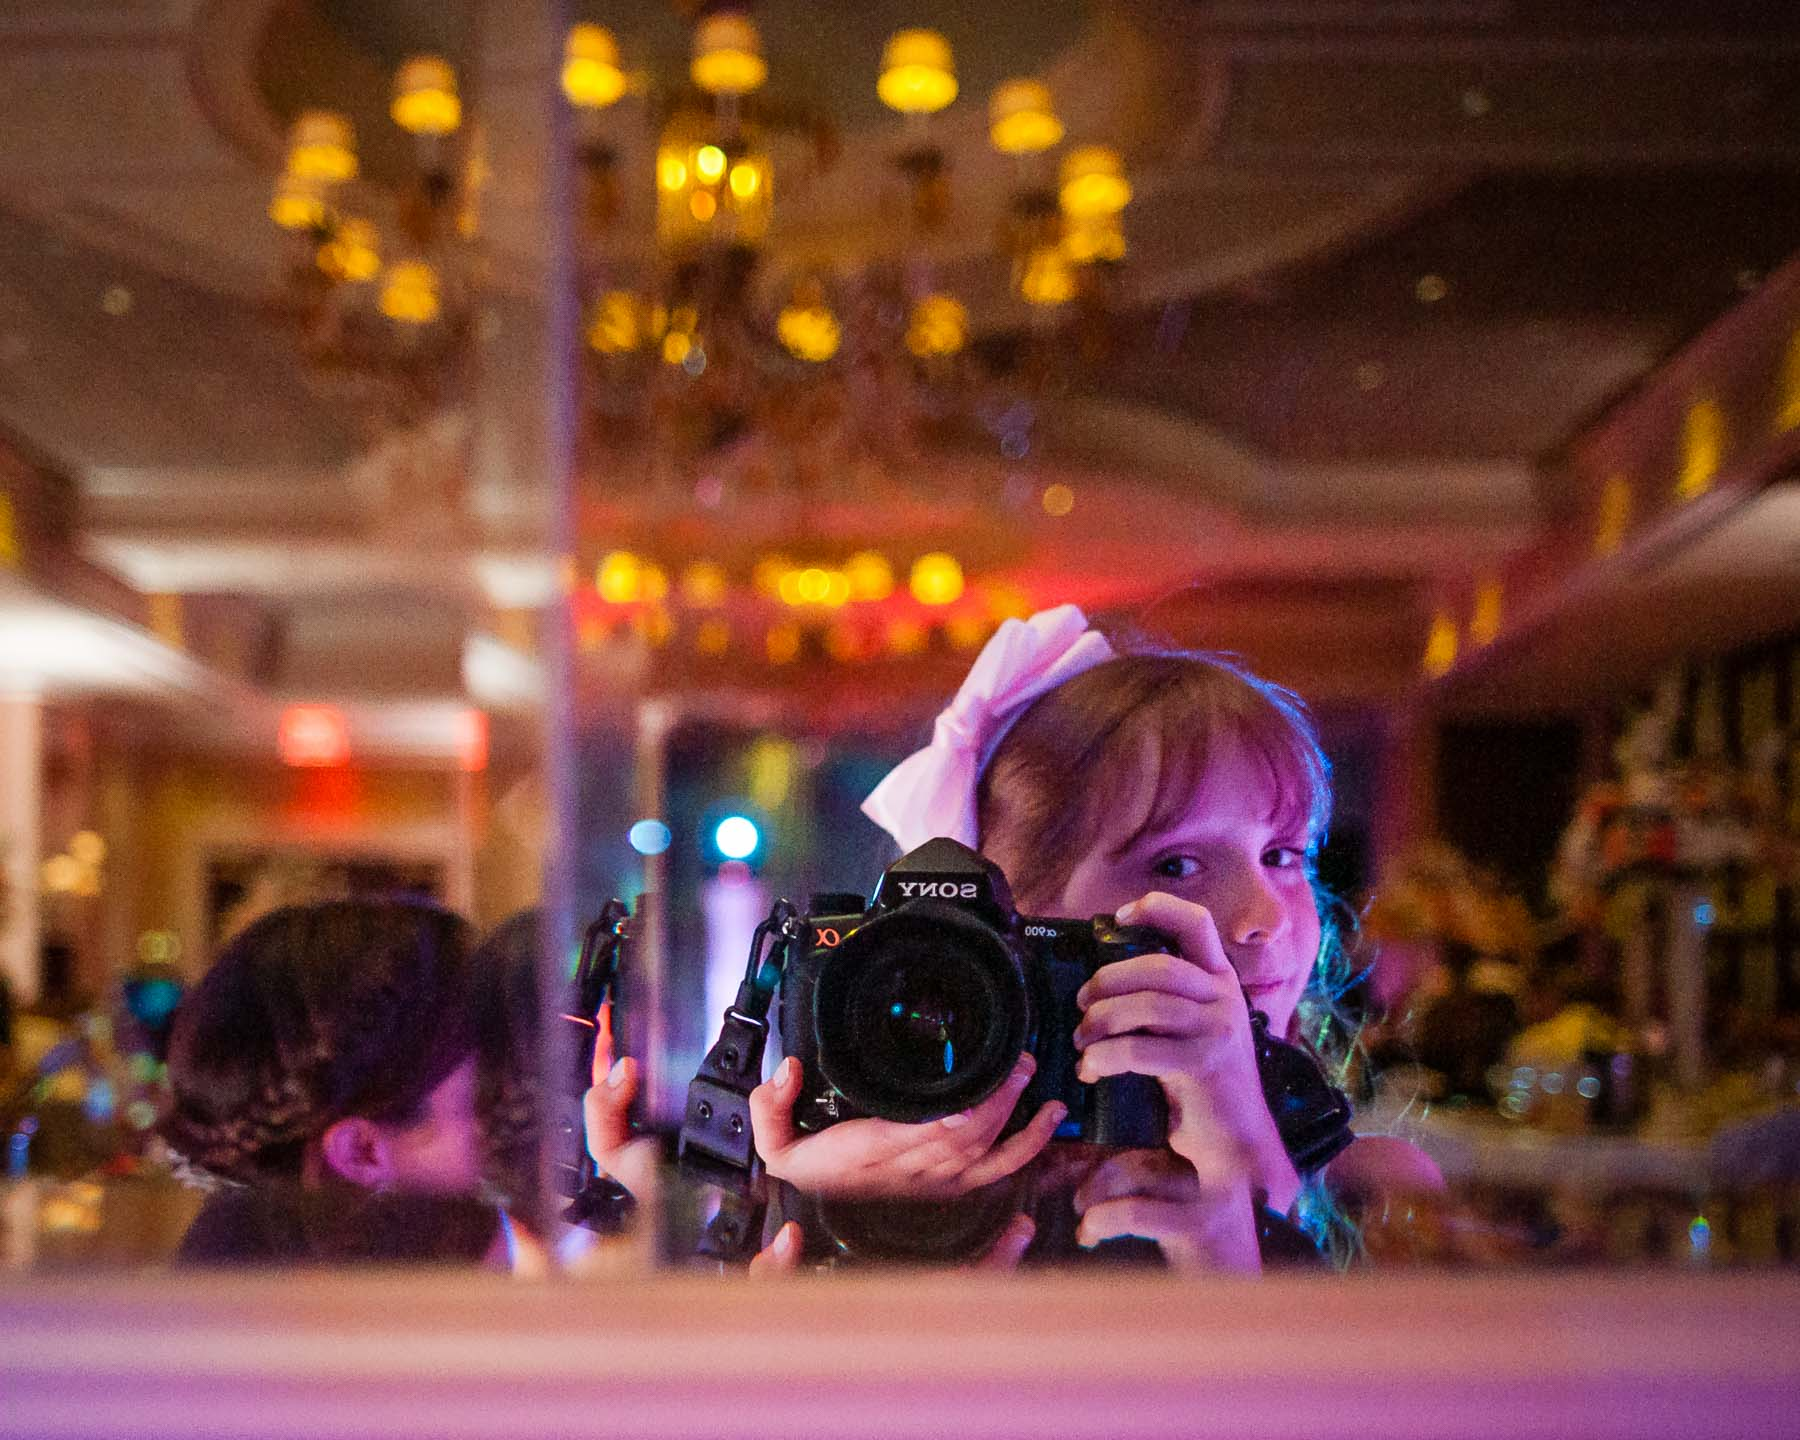 7 year old girl takes a self-portrait at a wedding with a full-frame DSLR Sony A900